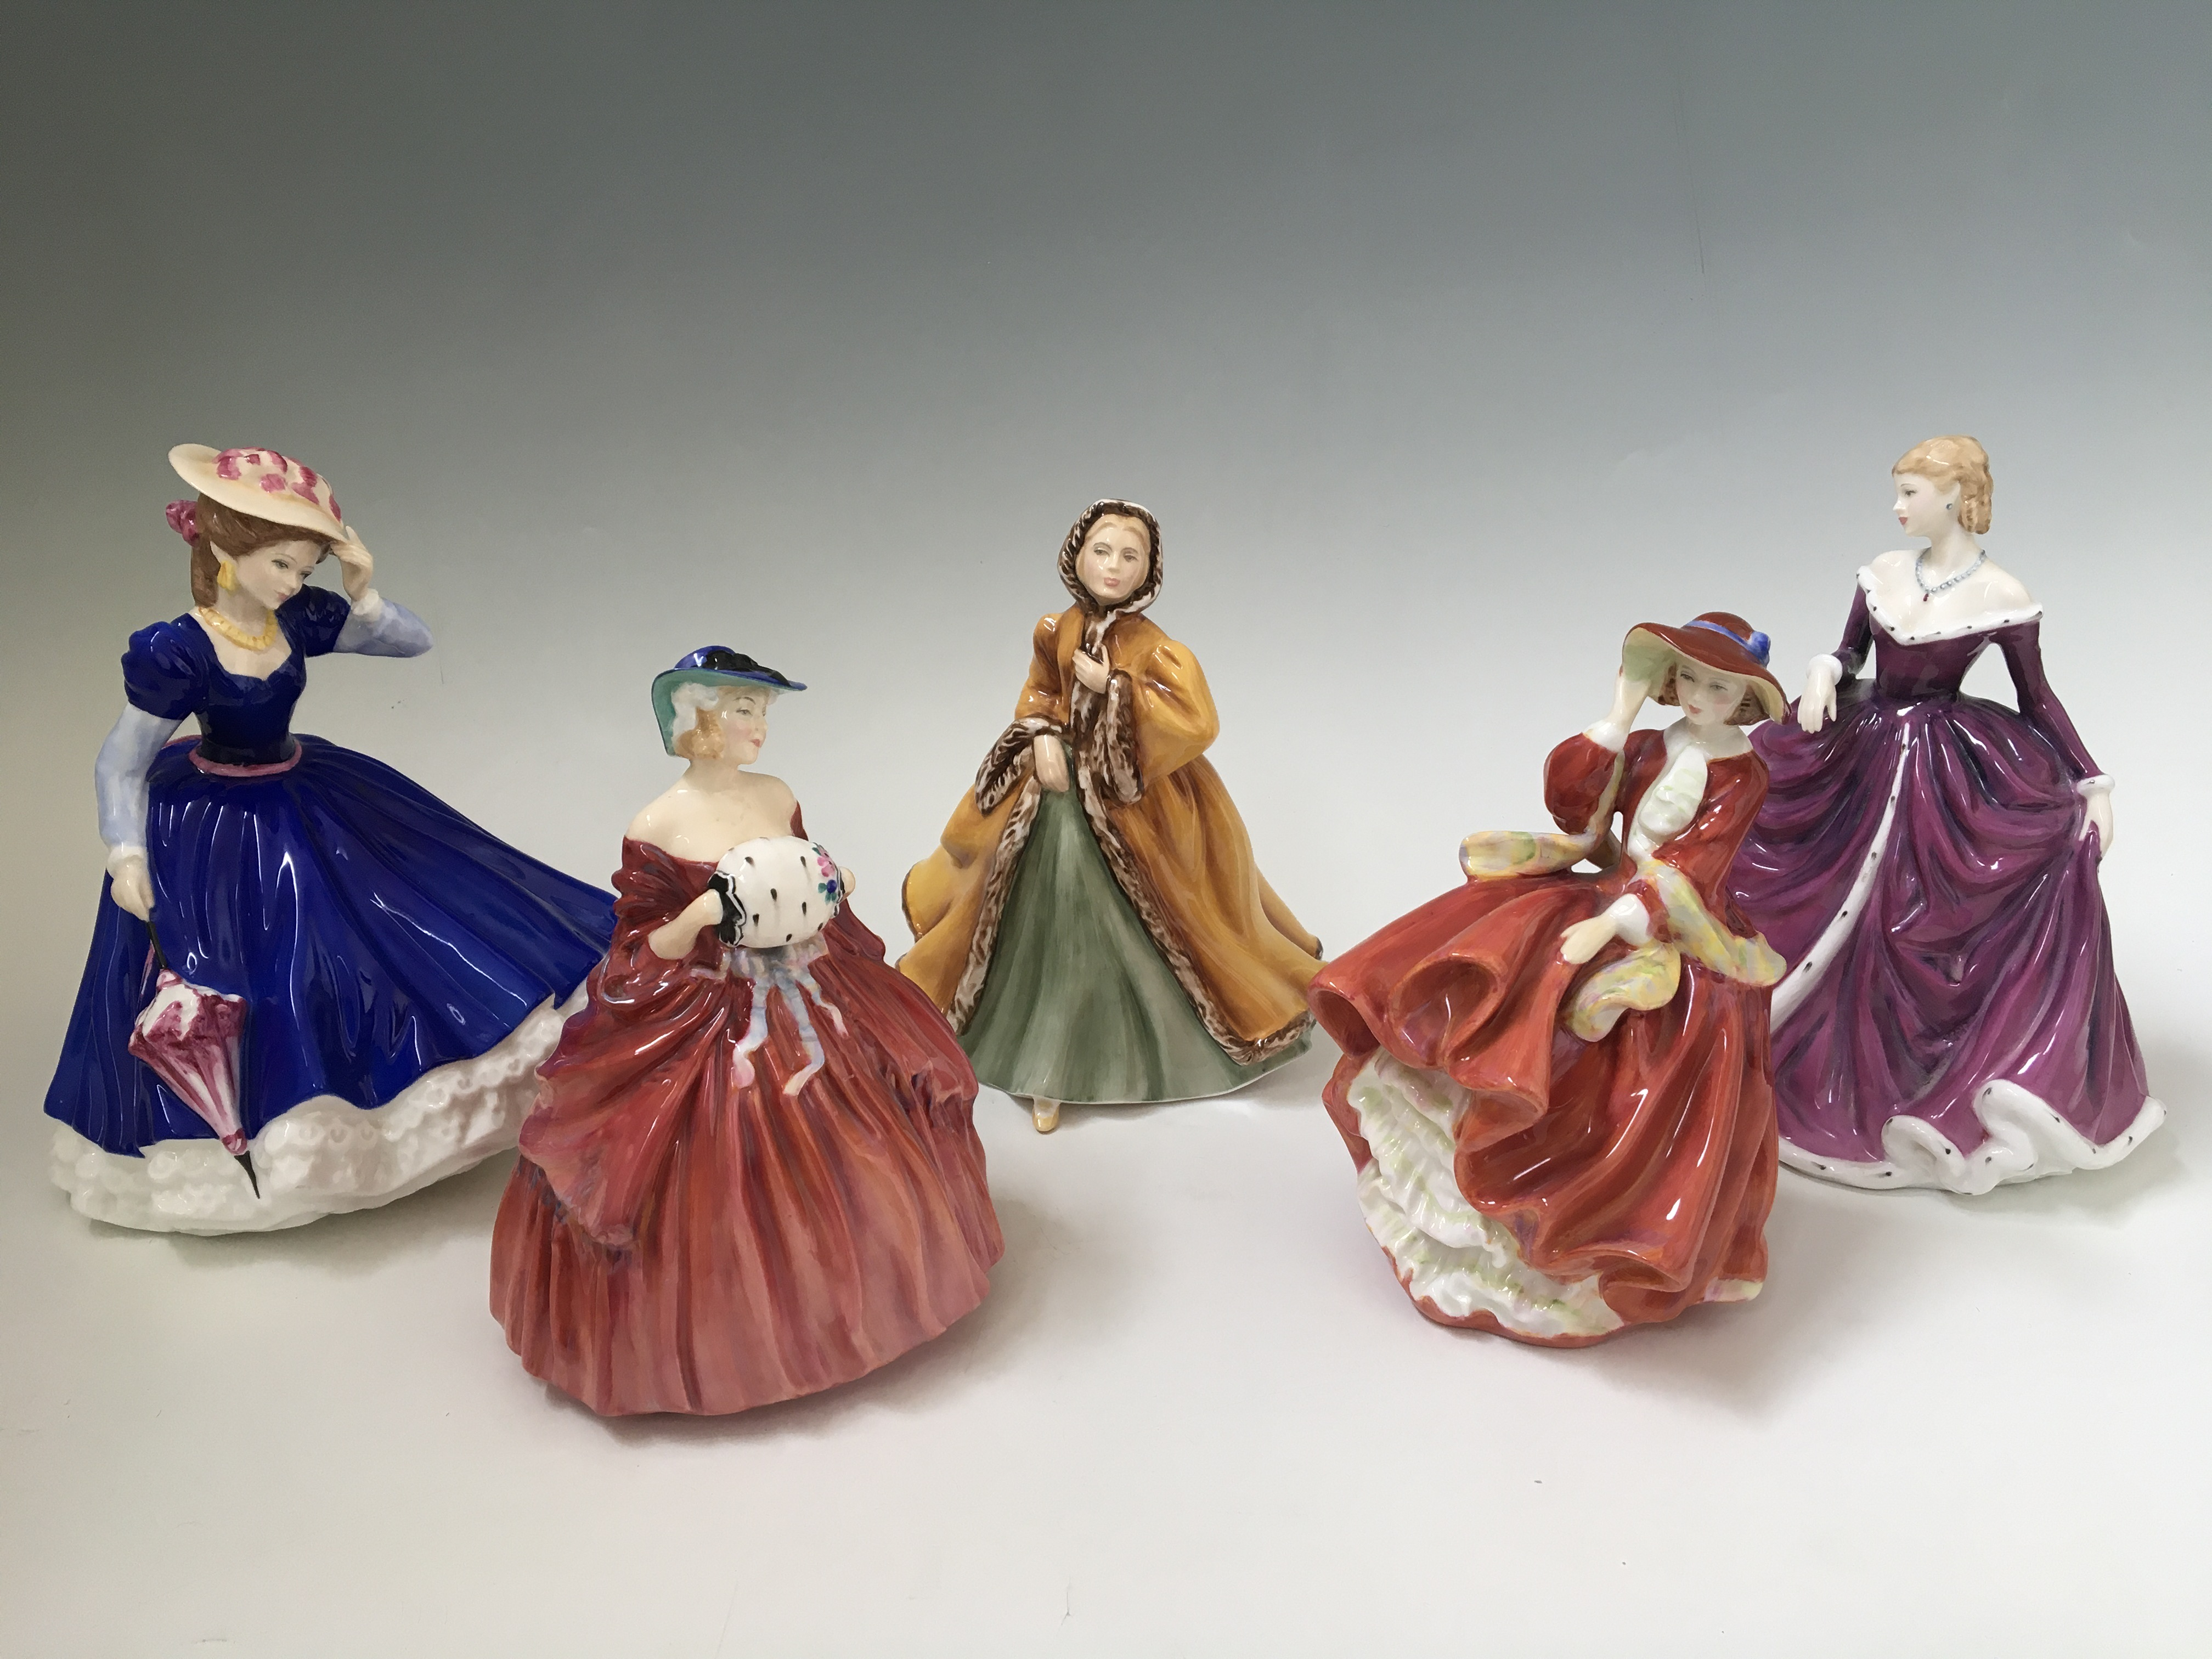 Five Royal Doulton figures, Top o' the Hill, Belle, Rachel, Genevieve and Mary. IMPORTANT: Online